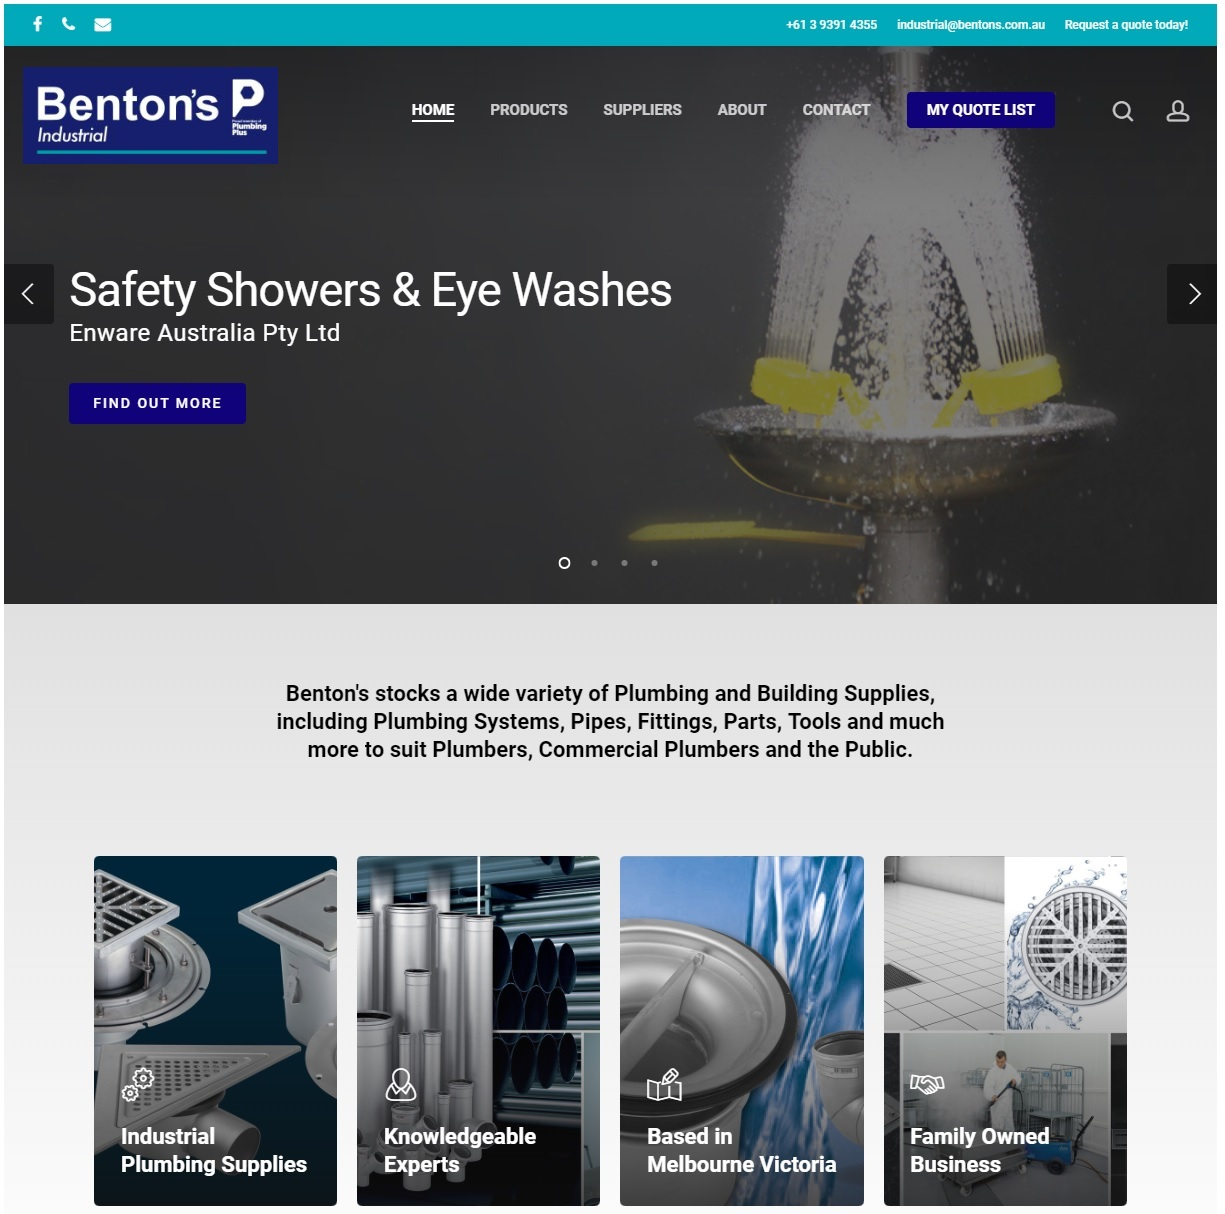 Benton's Industrial Web Site Example